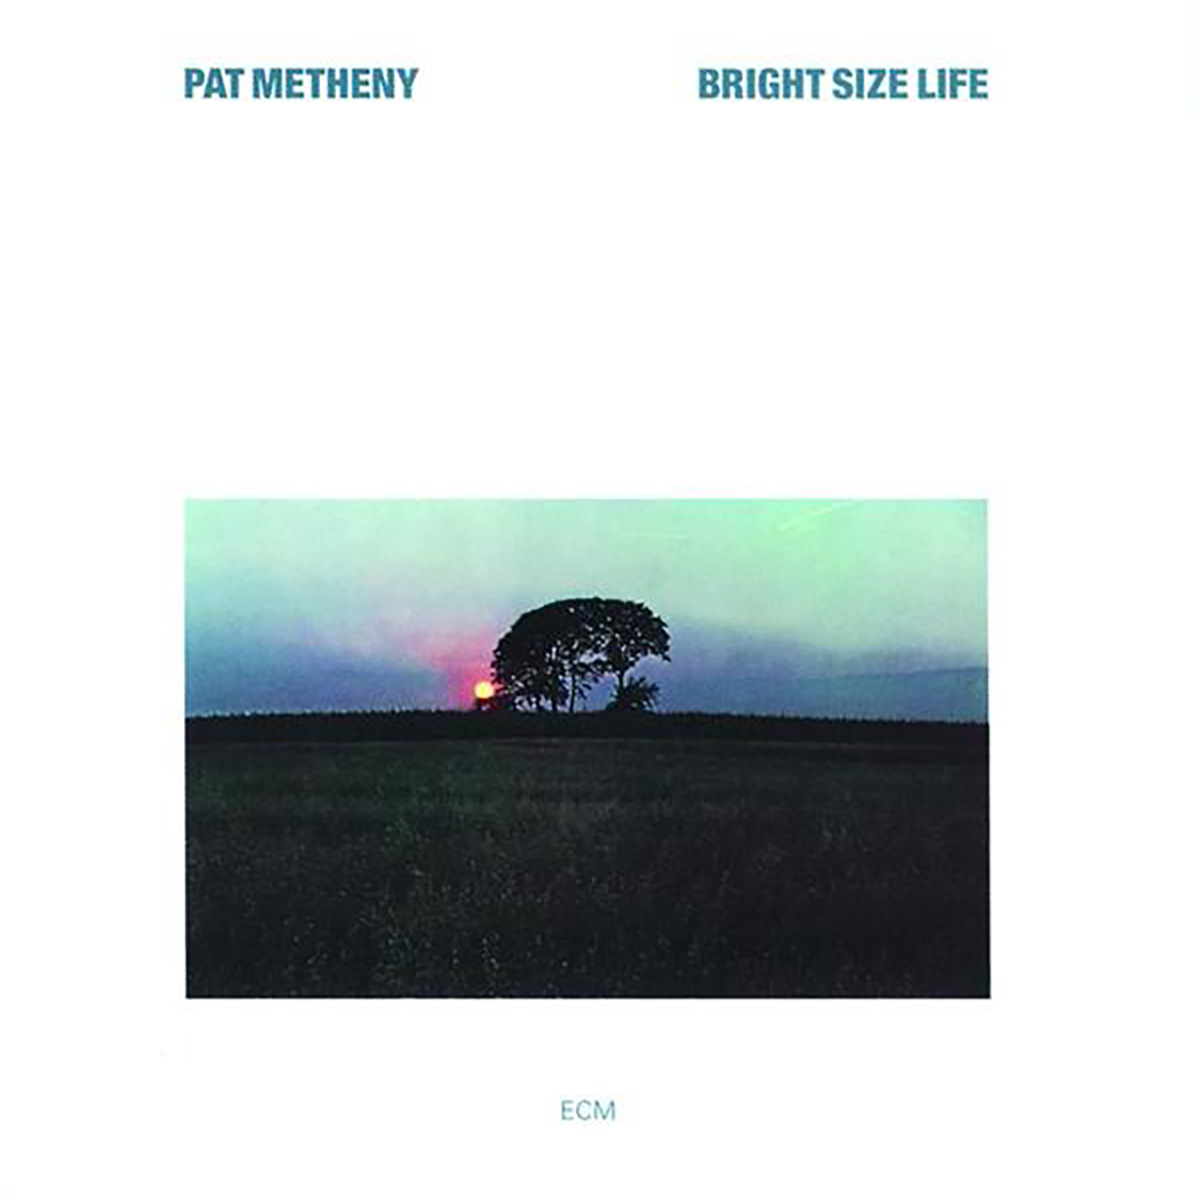 Pat Metheny - Bright Size Life - Digital Download